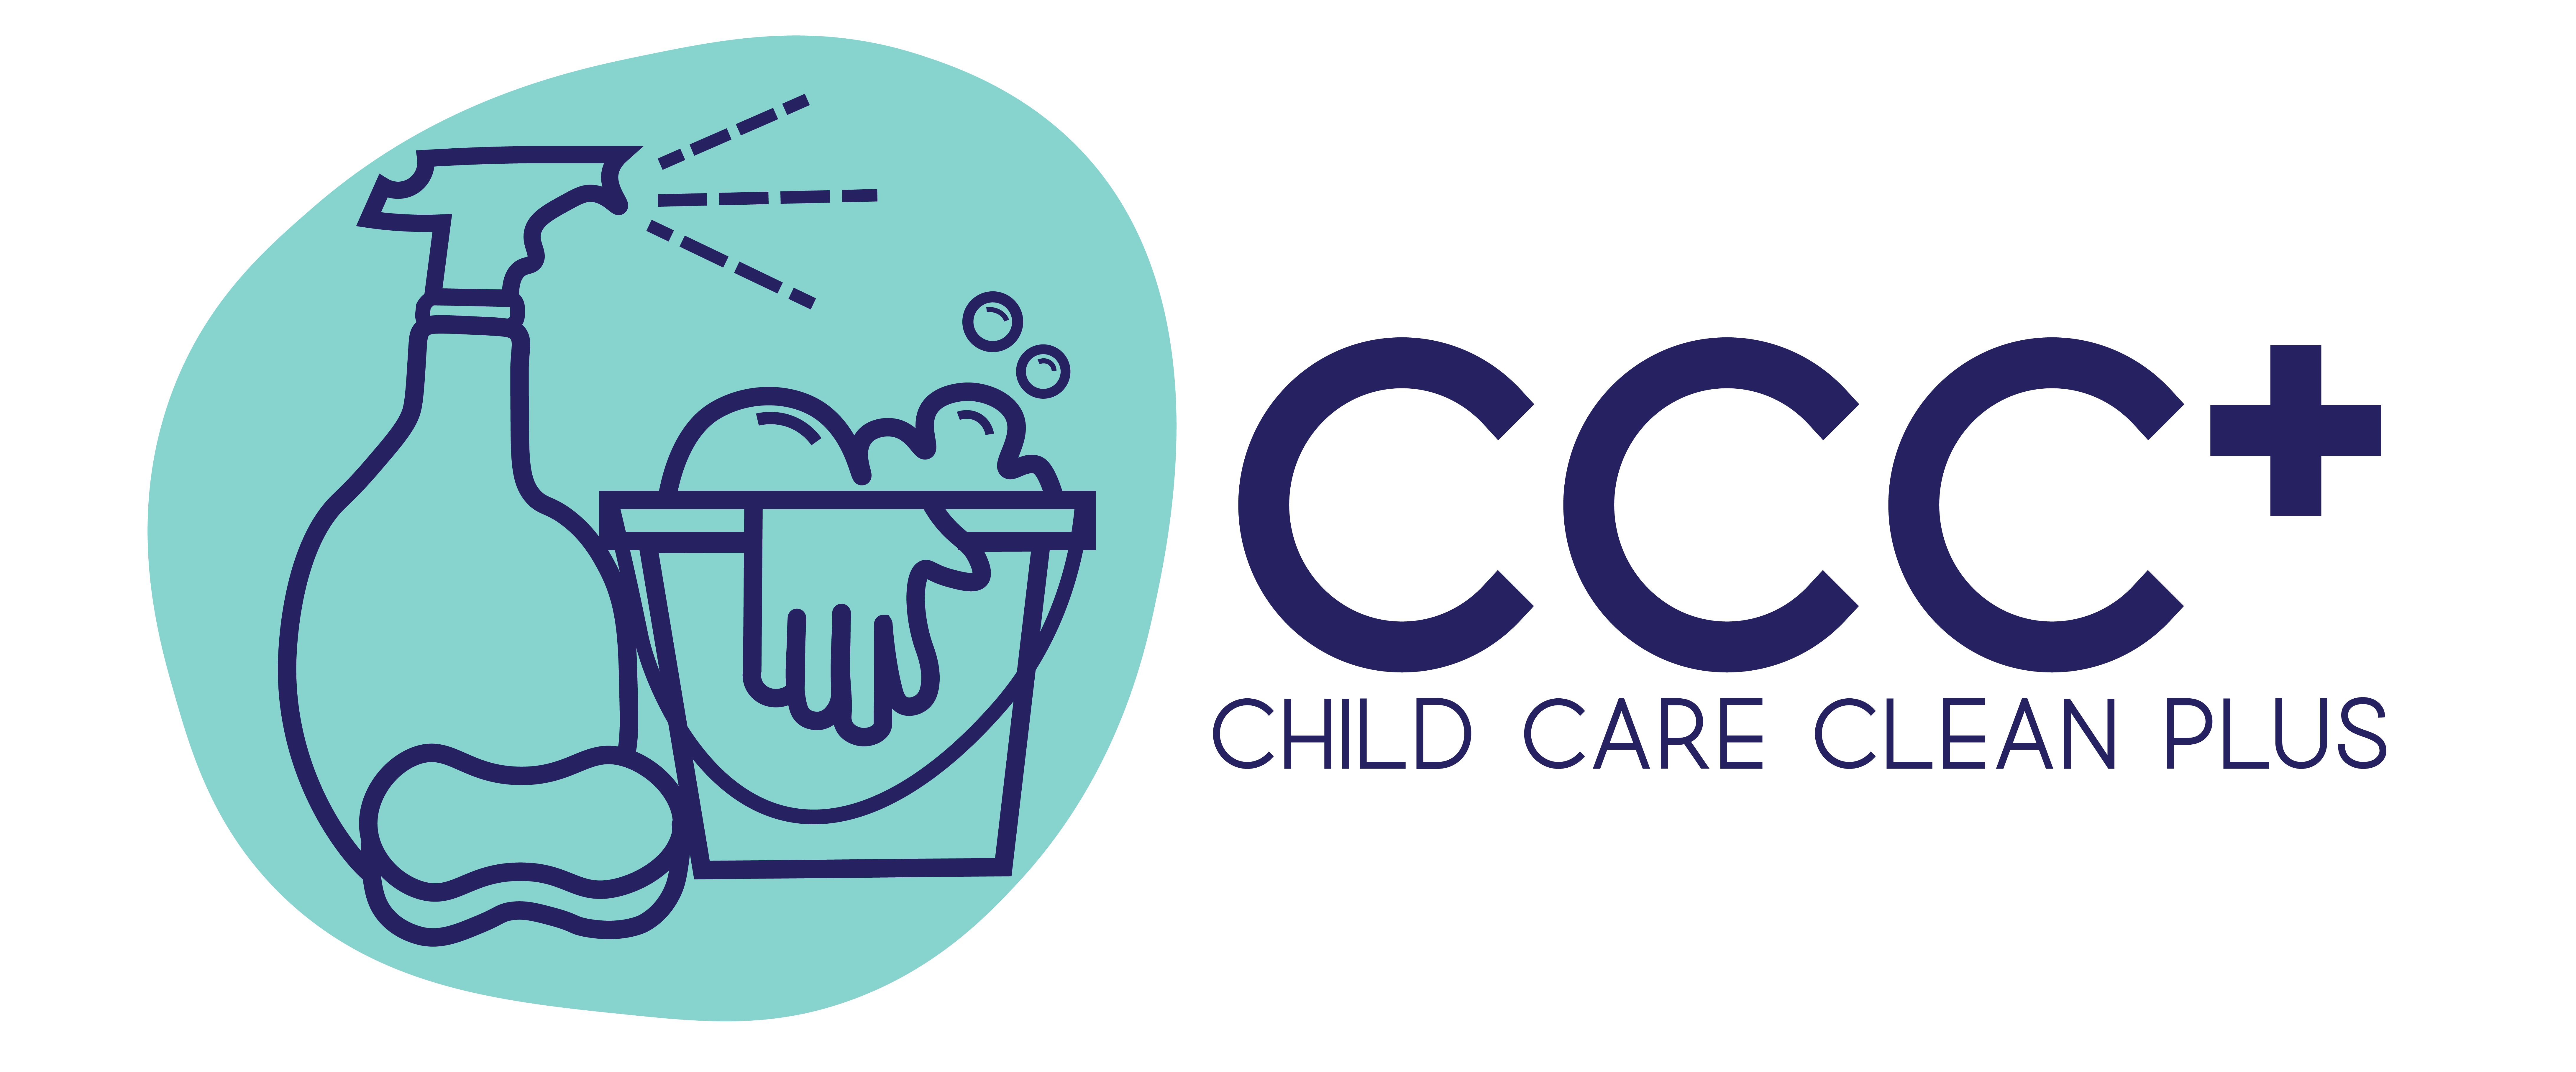 Child Care Clean Plus